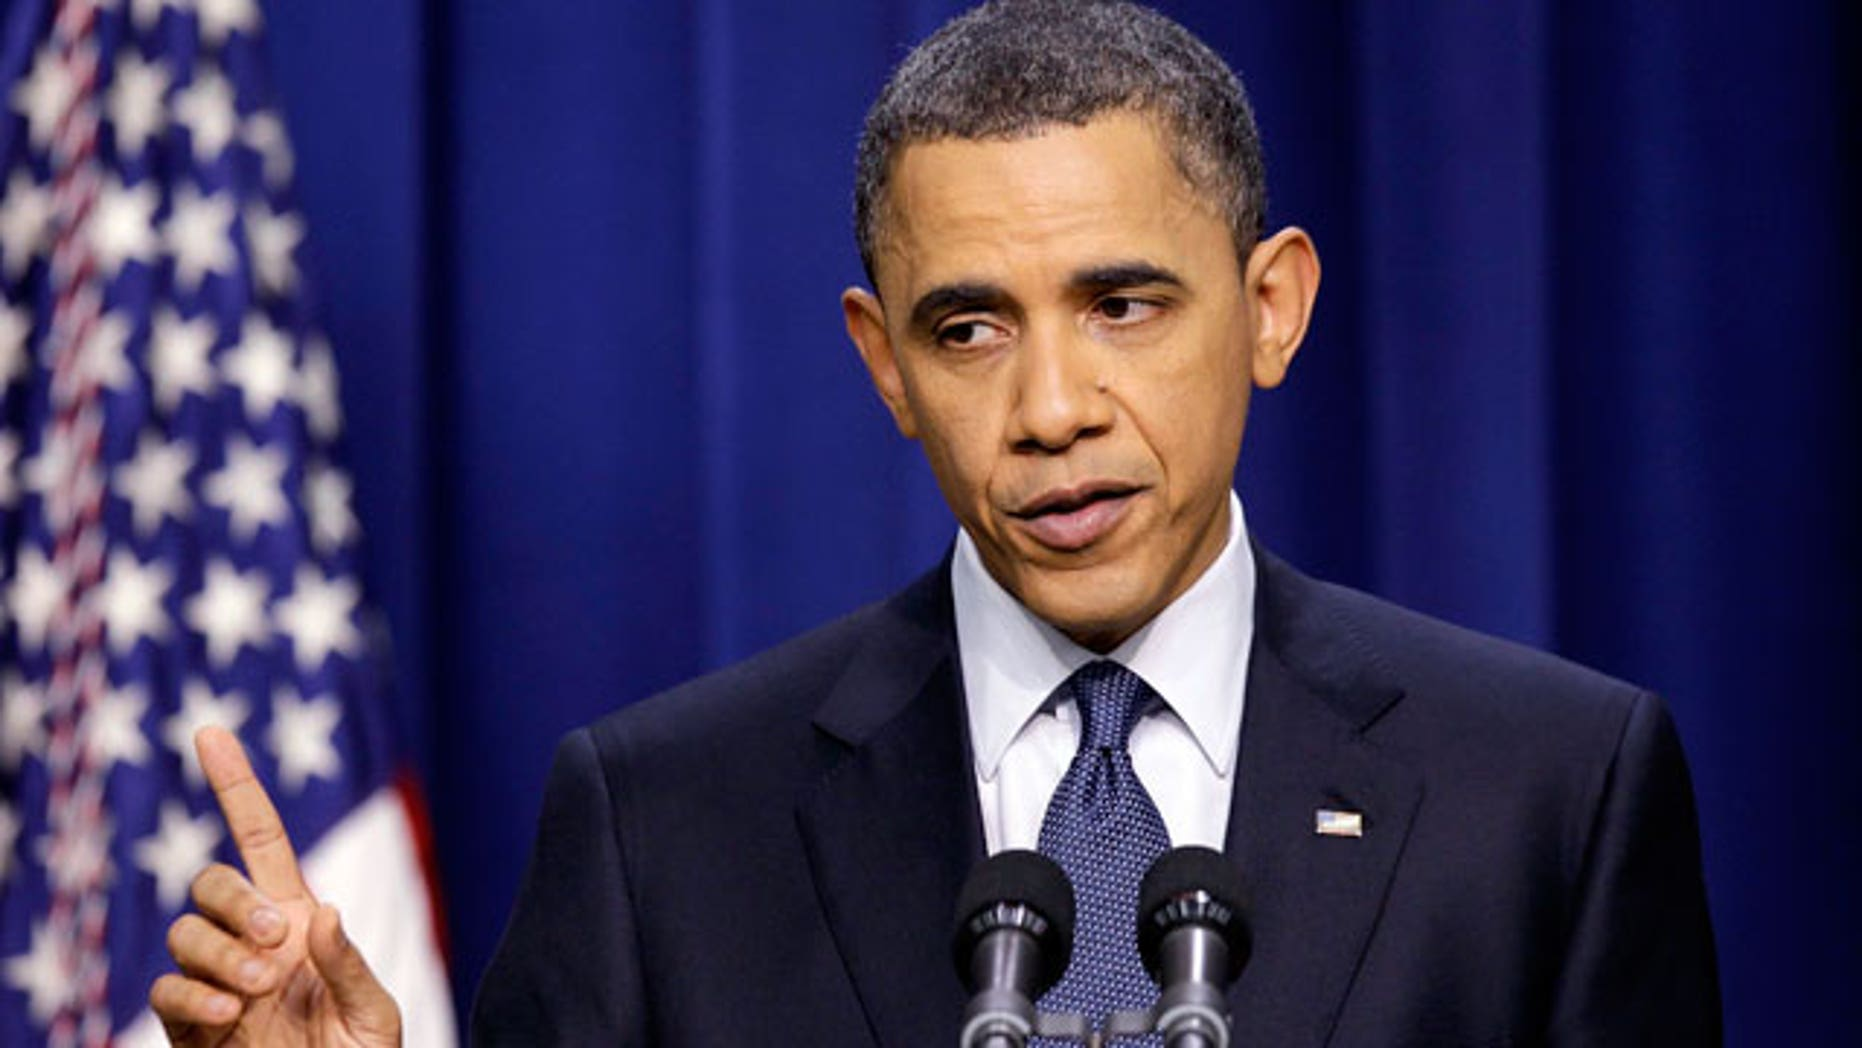 President Obama answers a question during a press conference on the White House complex in Washington, Friday, March 11, 2011. (AP)